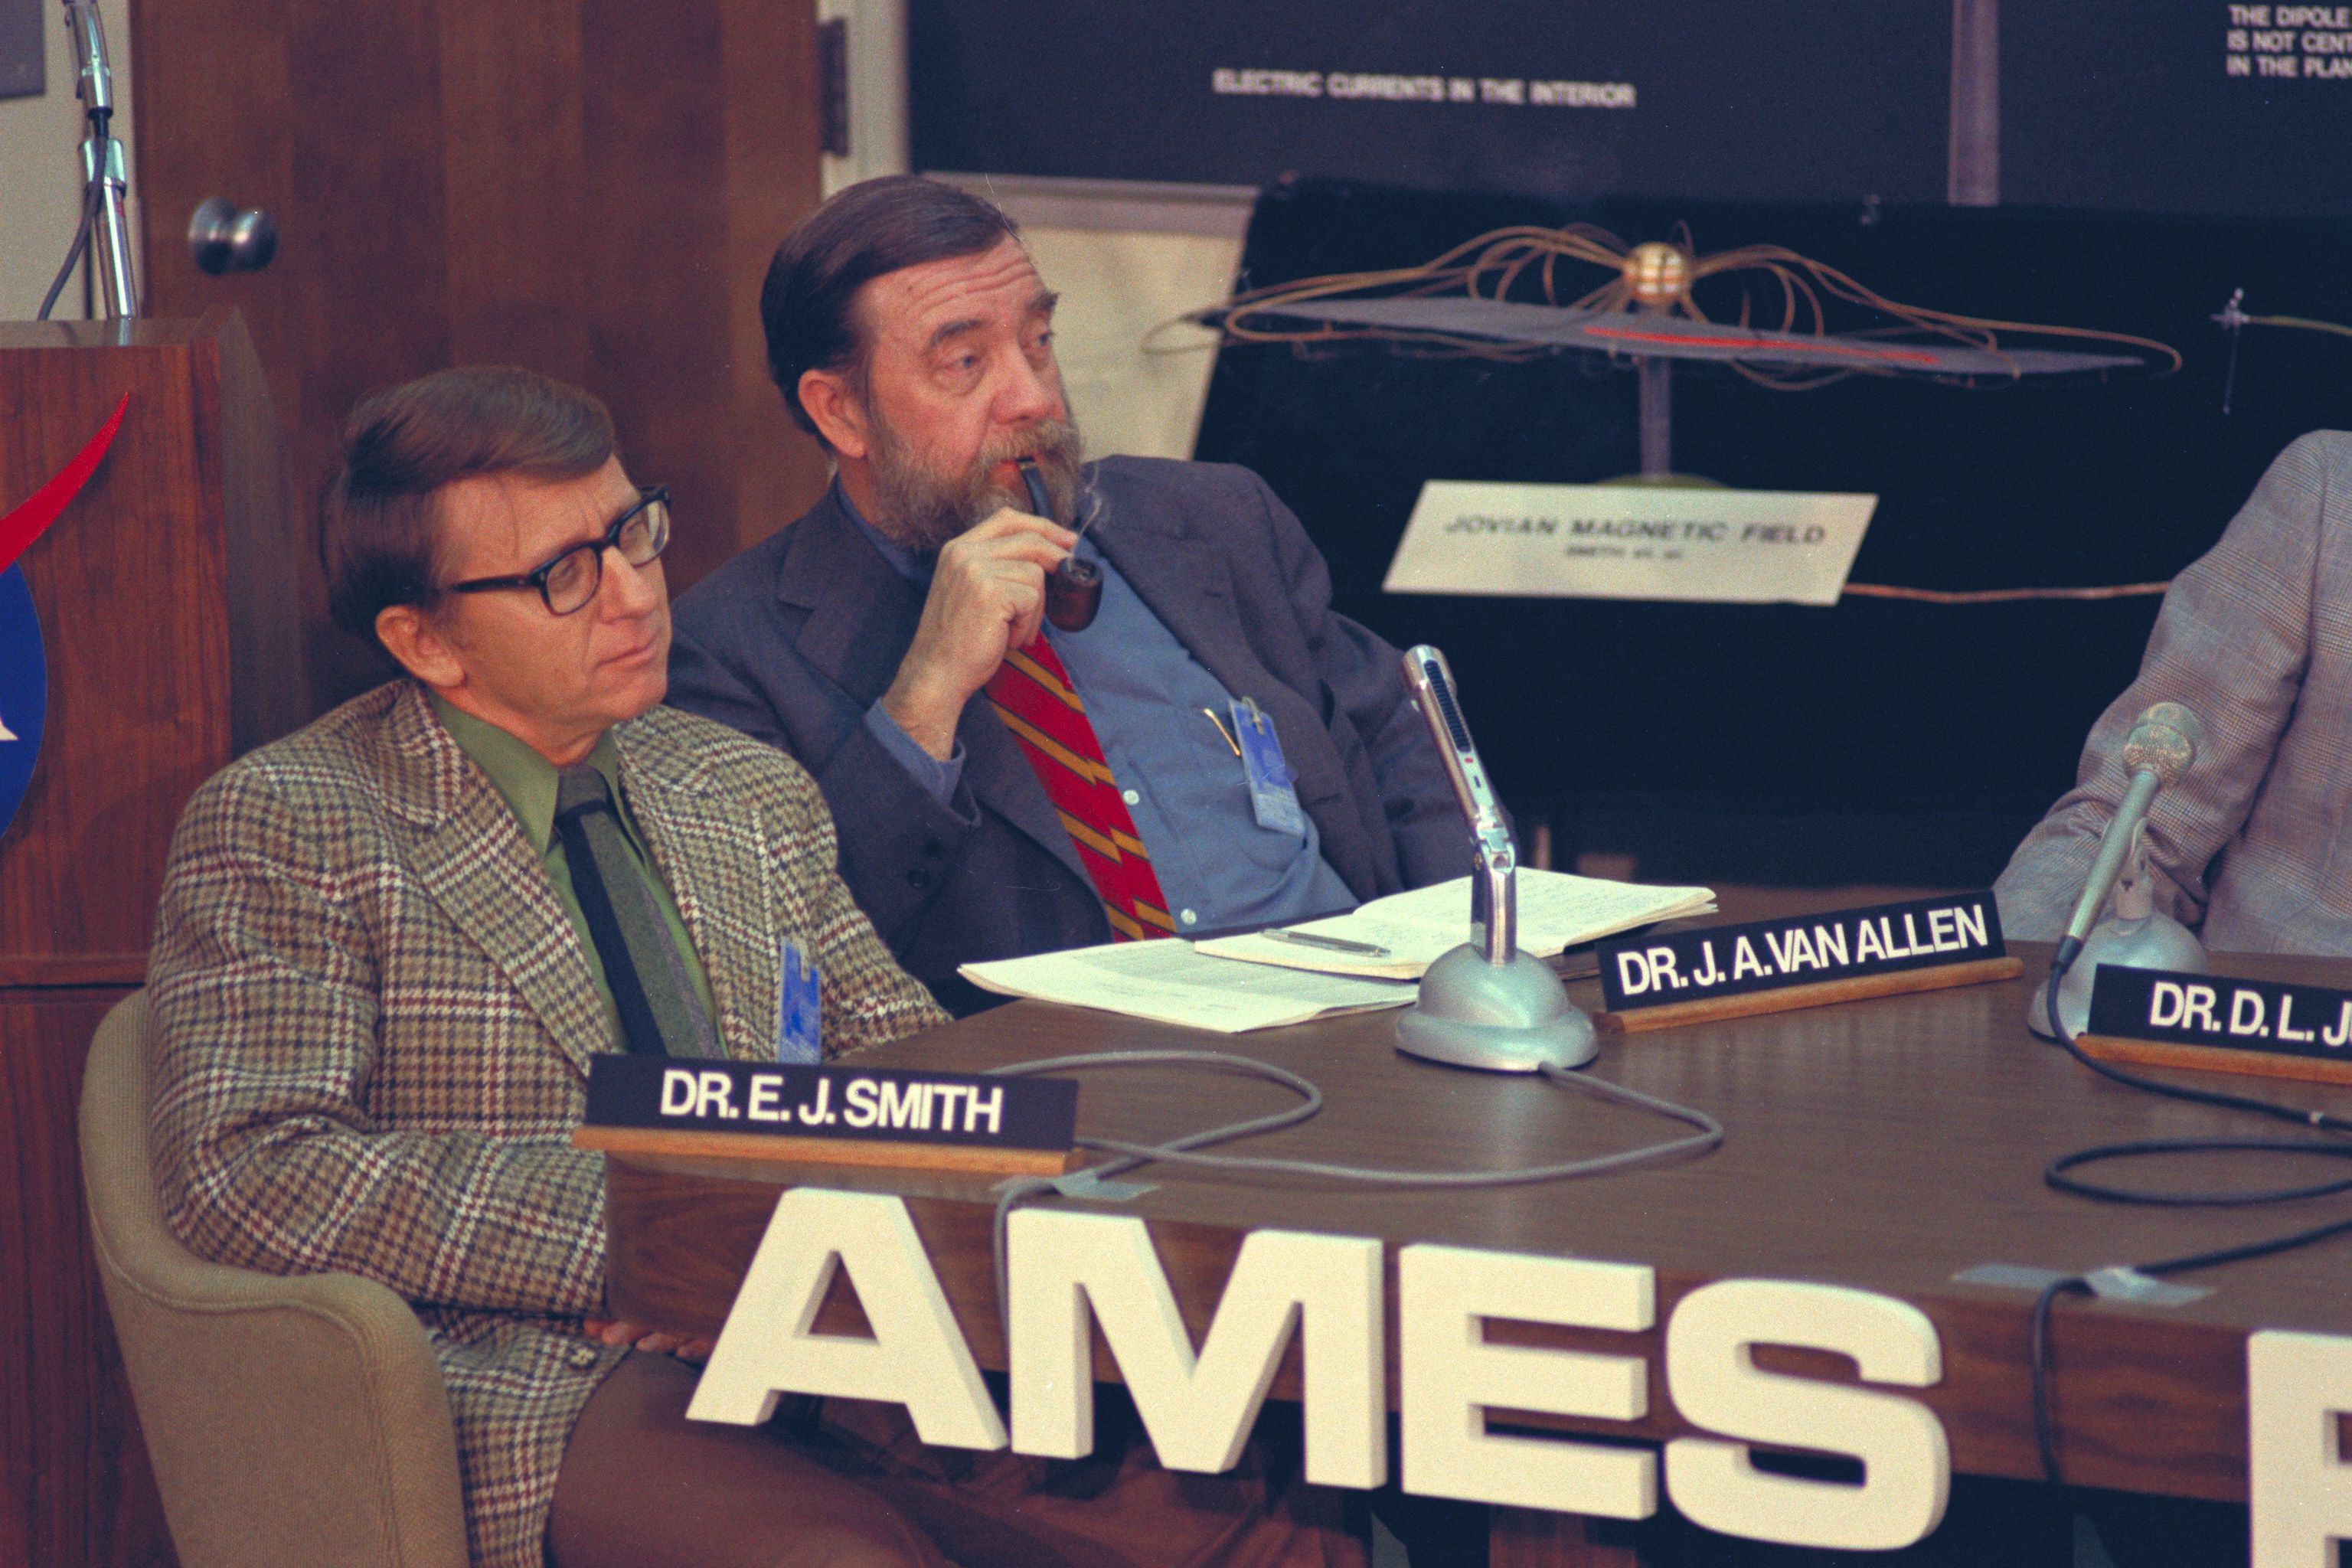 Legendary space scientist James van<br /> Allen is seen smoking a pipe alongside<br /> physicist Edward Smith at a Pioneer 11<br /> press conference in 1974.<br /> Image credit: NASA Ames&nbsp;&nbsp;&nbsp;&nbsp;&nbsp;&nbsp;<br /> <a href='http://www.nasa.gov/centers/ames/images/content/739467main_AC74-9036-236.jpg' class='bbc_url' title='External link' rel='nofollow external'>Click for full resolution</a>